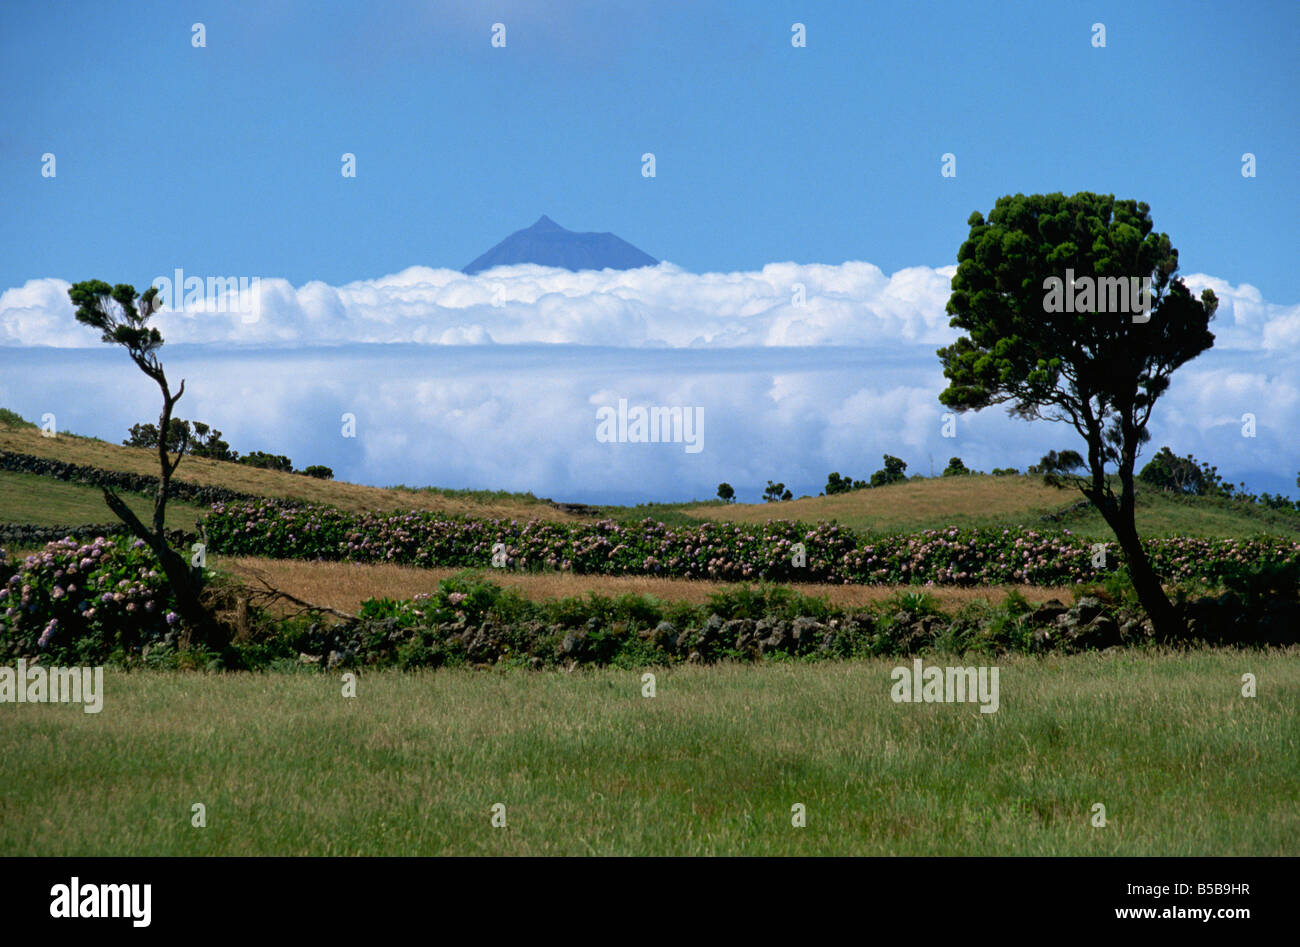 Pico projects above clouds Sao Jorge Azores Portugal Europe - Stock Image